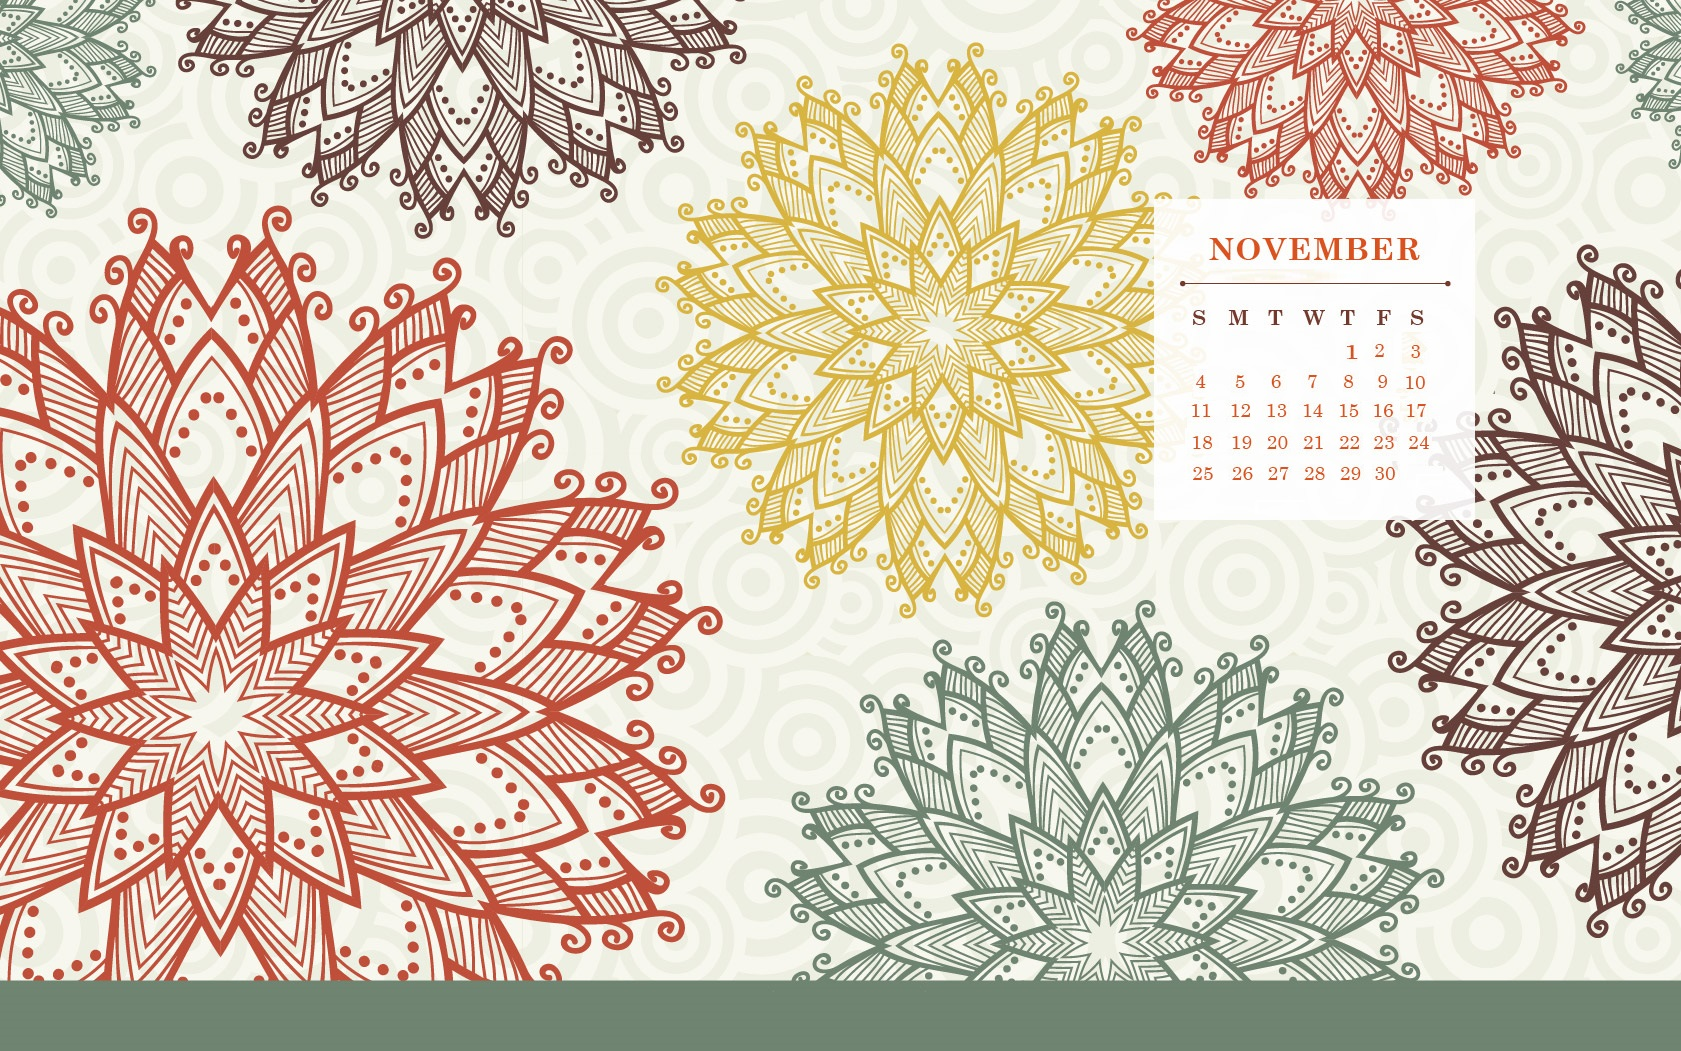 November 2018 Desktop HD Calendar